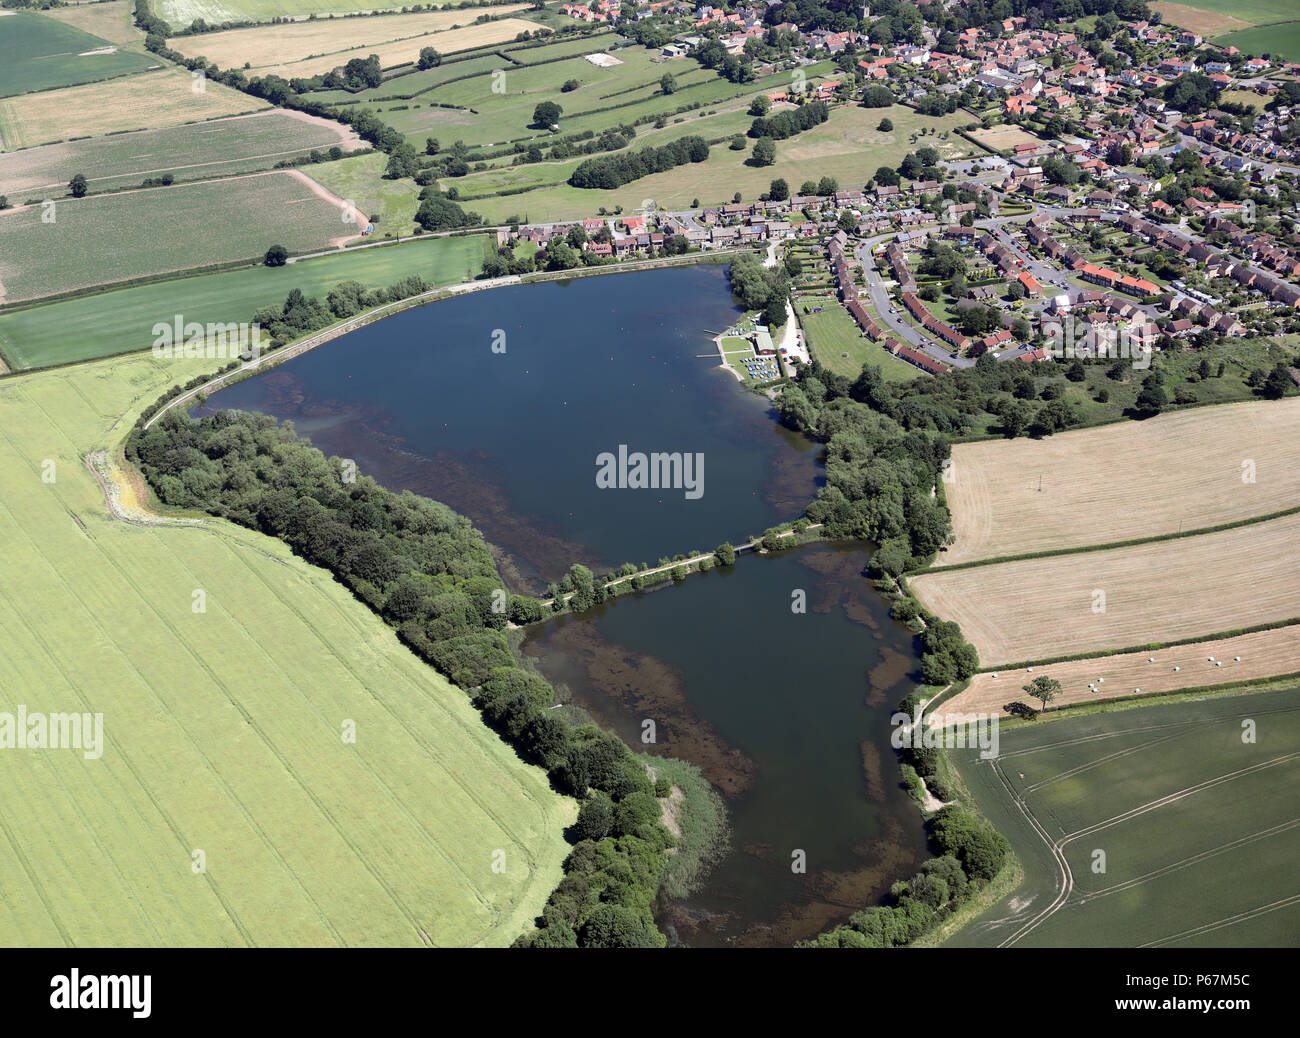 aerial view of Harthill Reservoir with Rotherham Sailing Club near Harthill, Sheffield - Stock Image